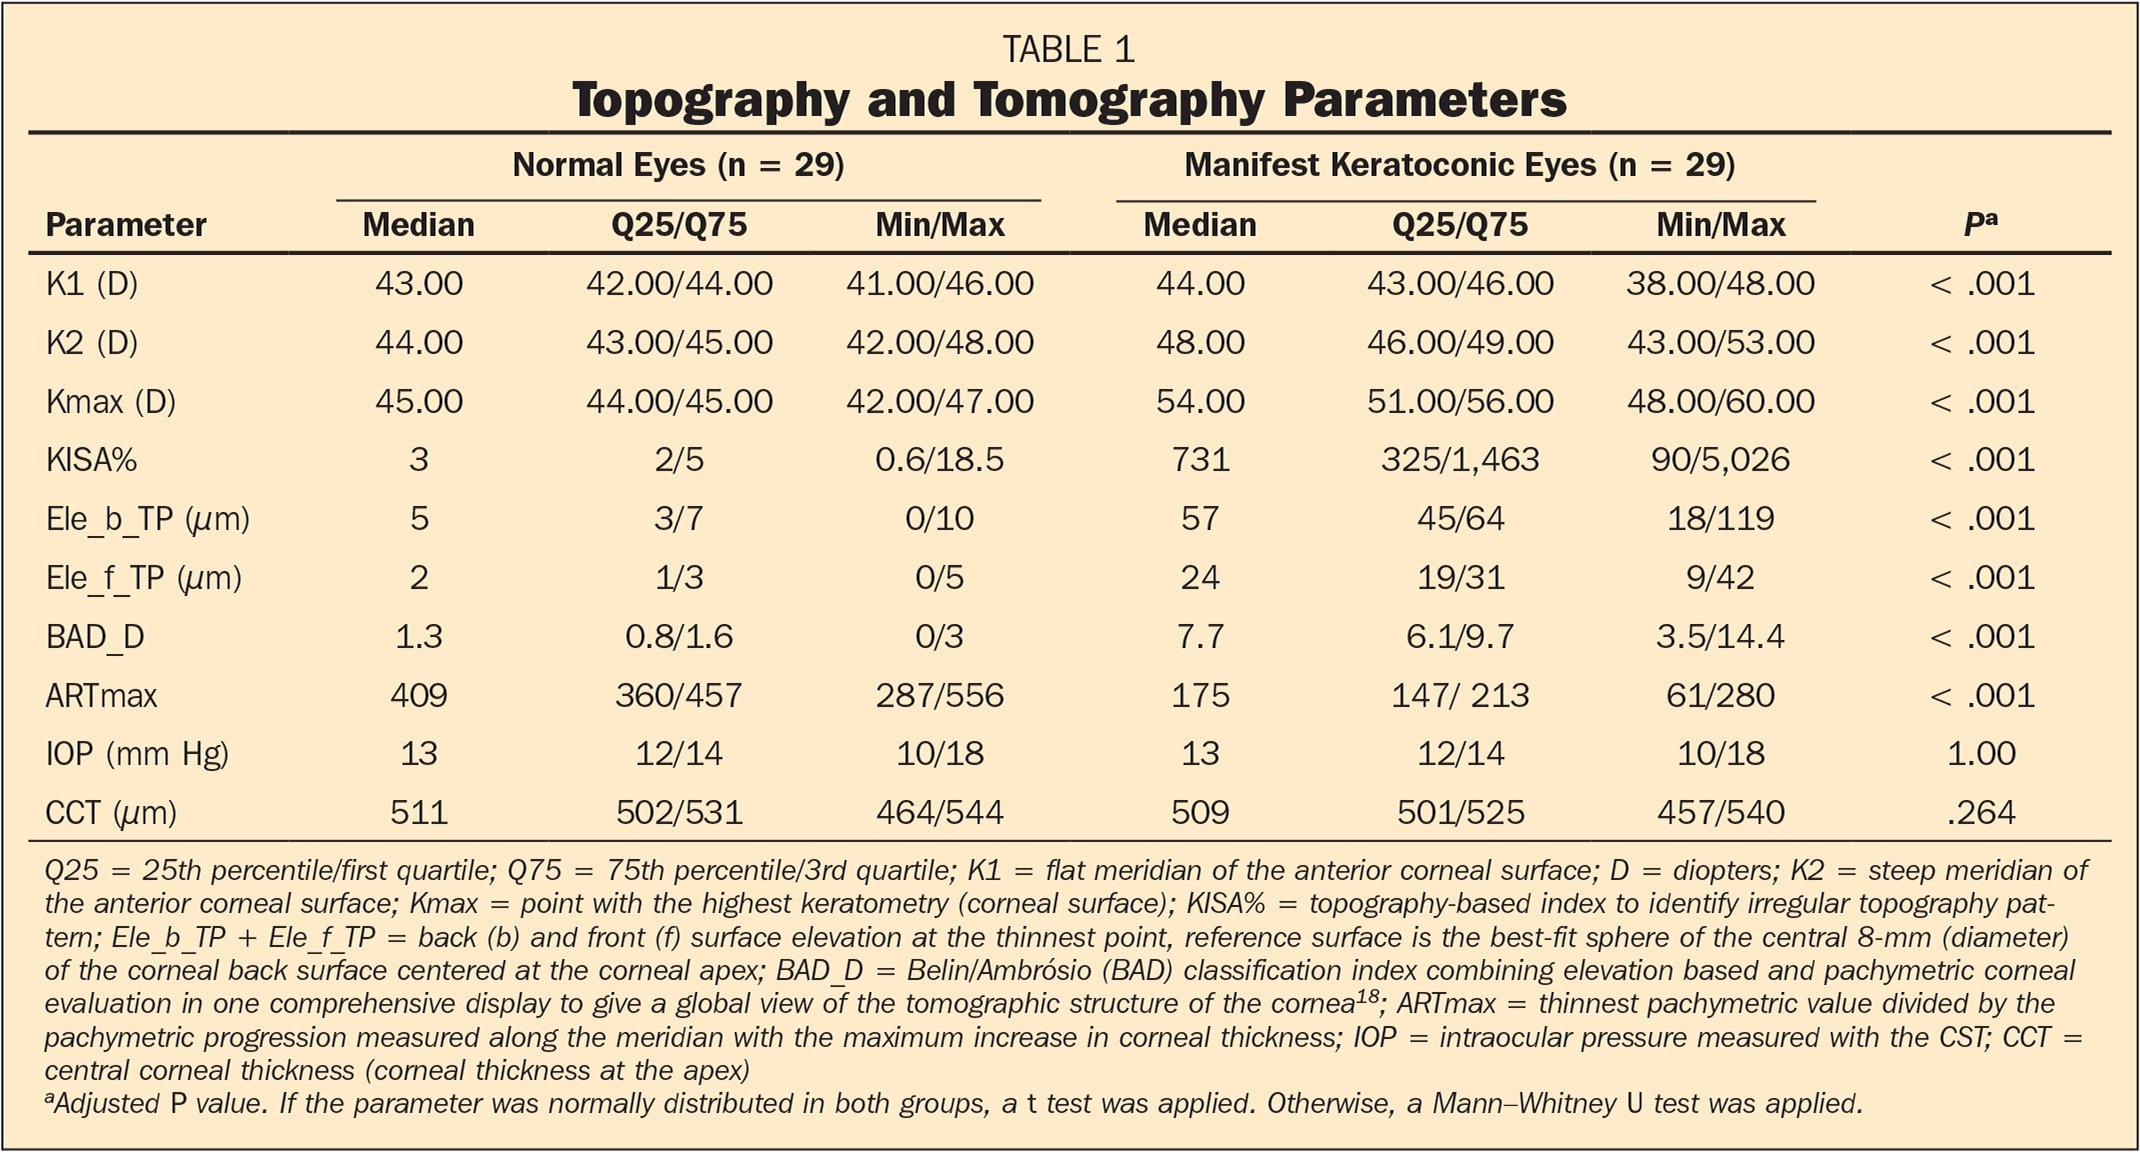 Topography and Tomography Parameters